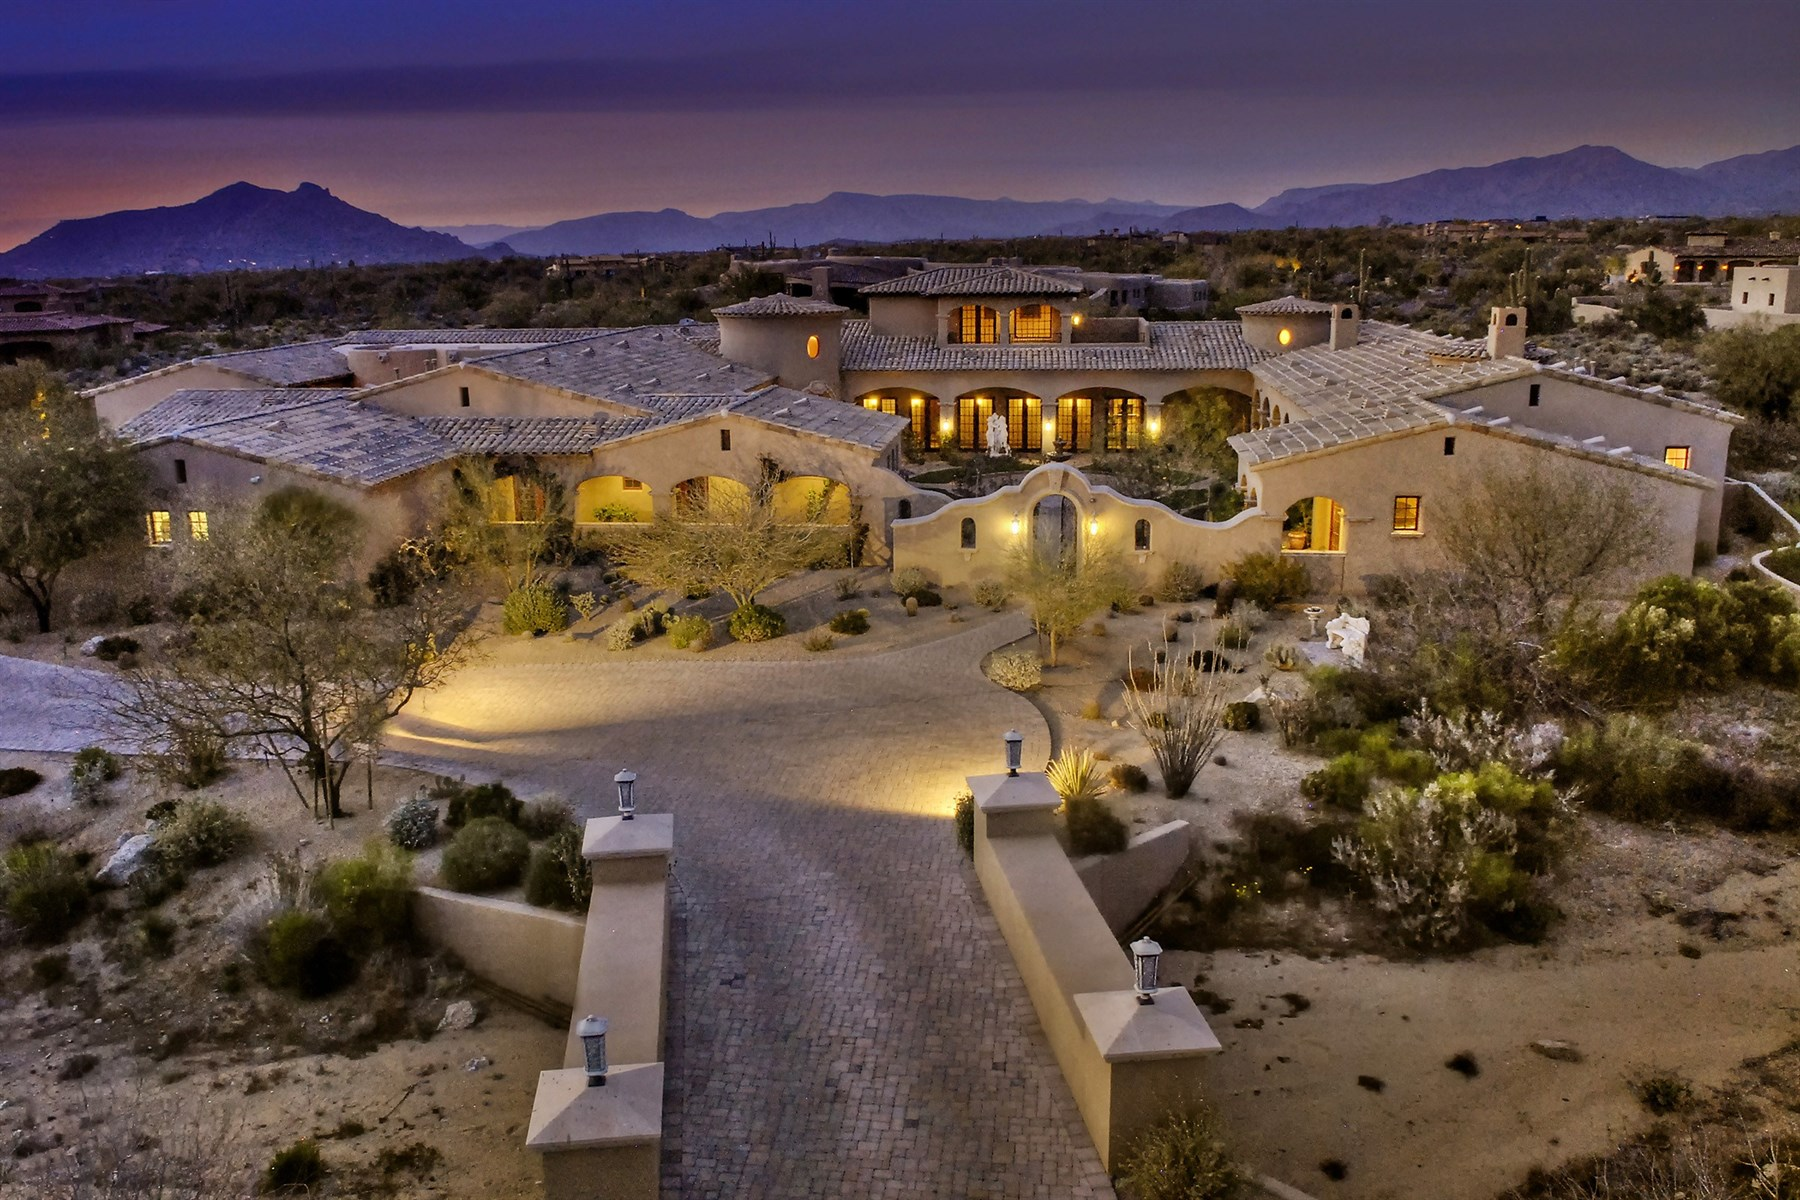 Property For Sale at 2.75 Acres Of Privacy In The Guard-Gated Golf Community Of Whisper Rock